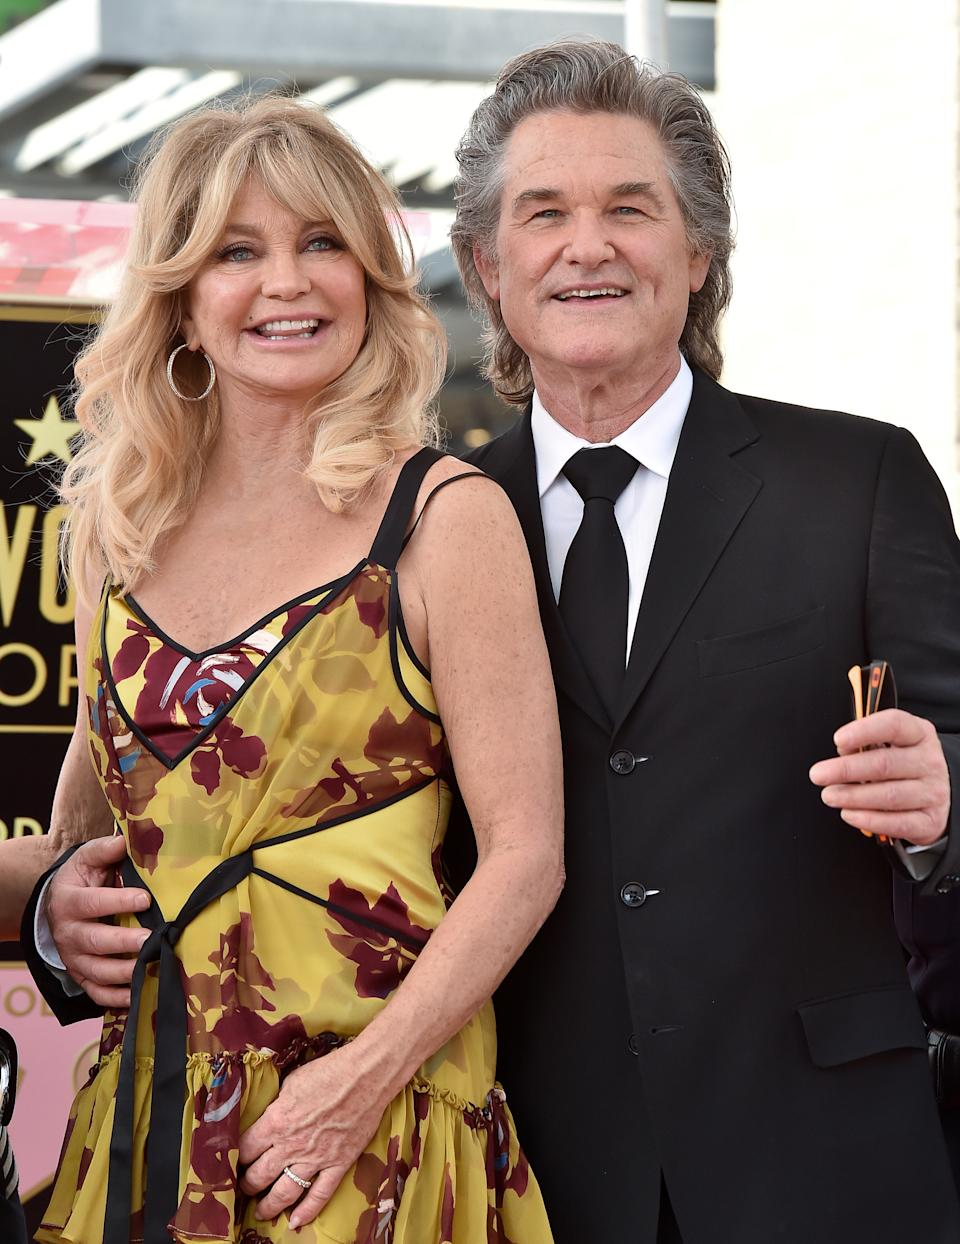 <p>Hawn and Russell's love is palpable - even after 37 years. Although they never legally married - the pair remain one of Hollywood's longest lasting relationships. <em>(Image via Getty Images)</em></p>